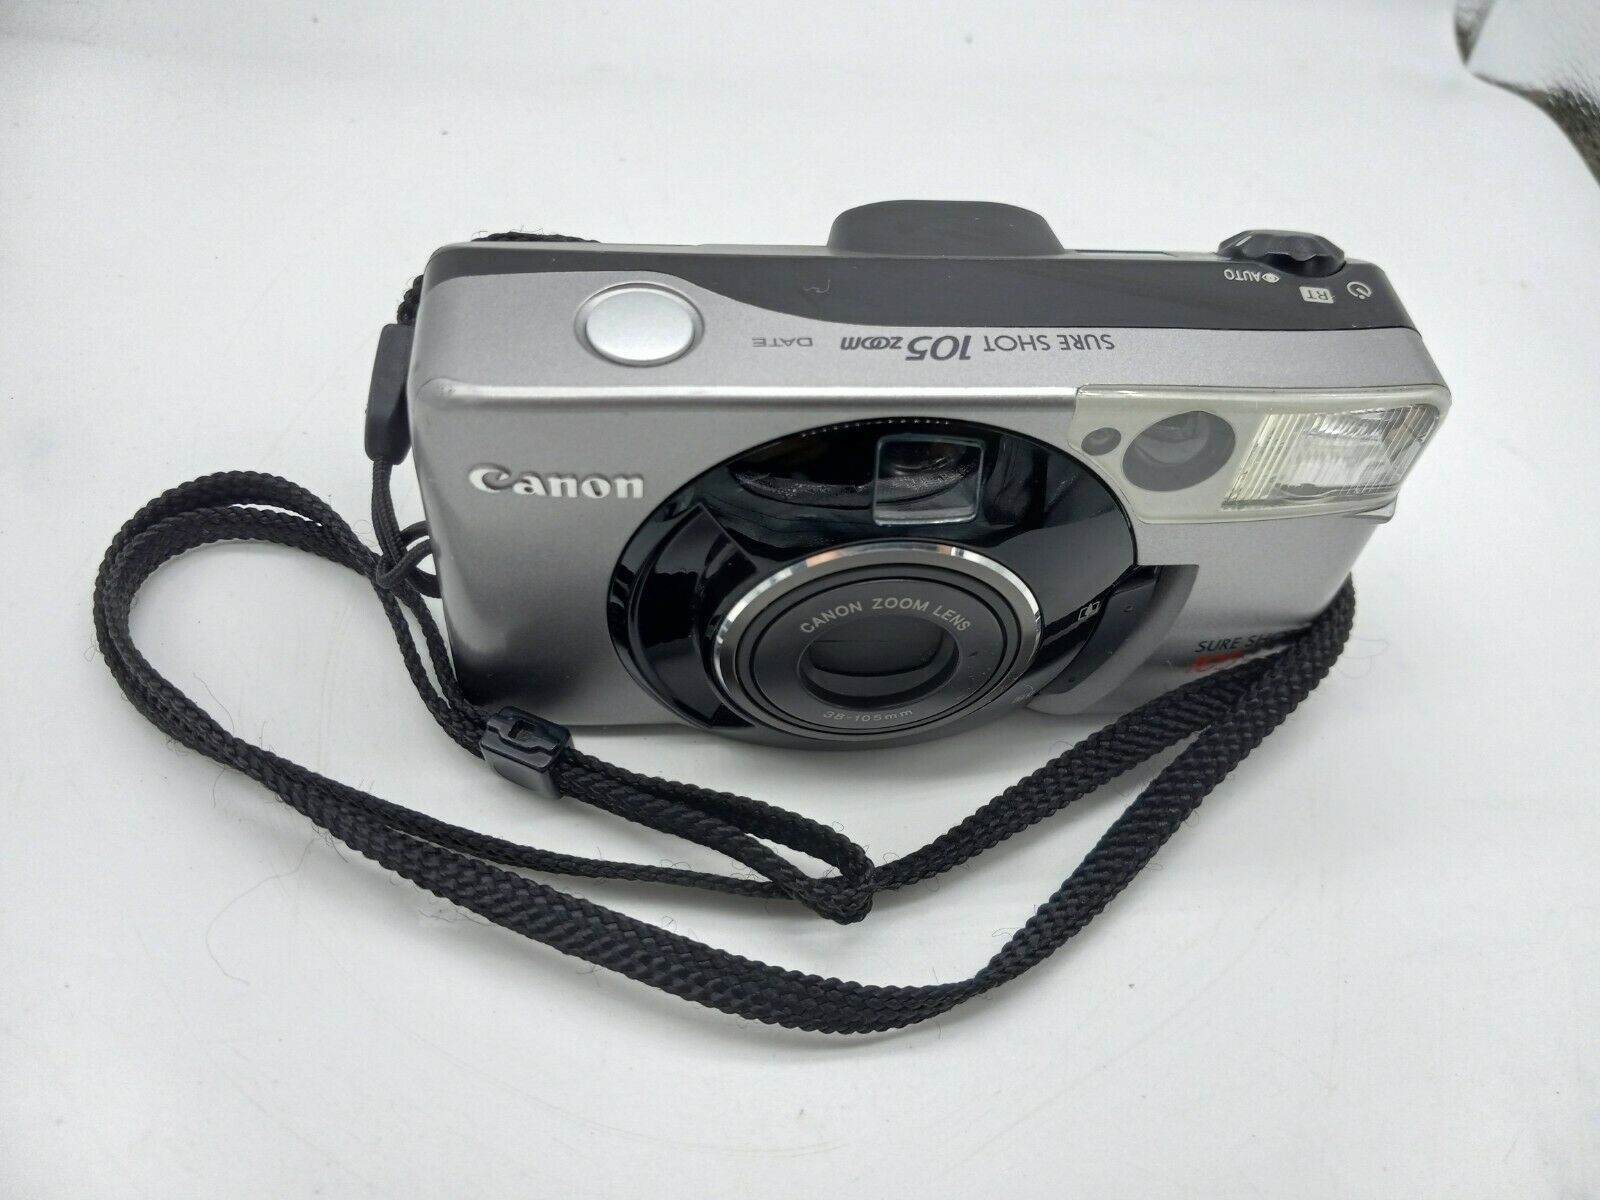 Canon Sure Shot 105 Zoom camera see notes (broken switch) - $9.89